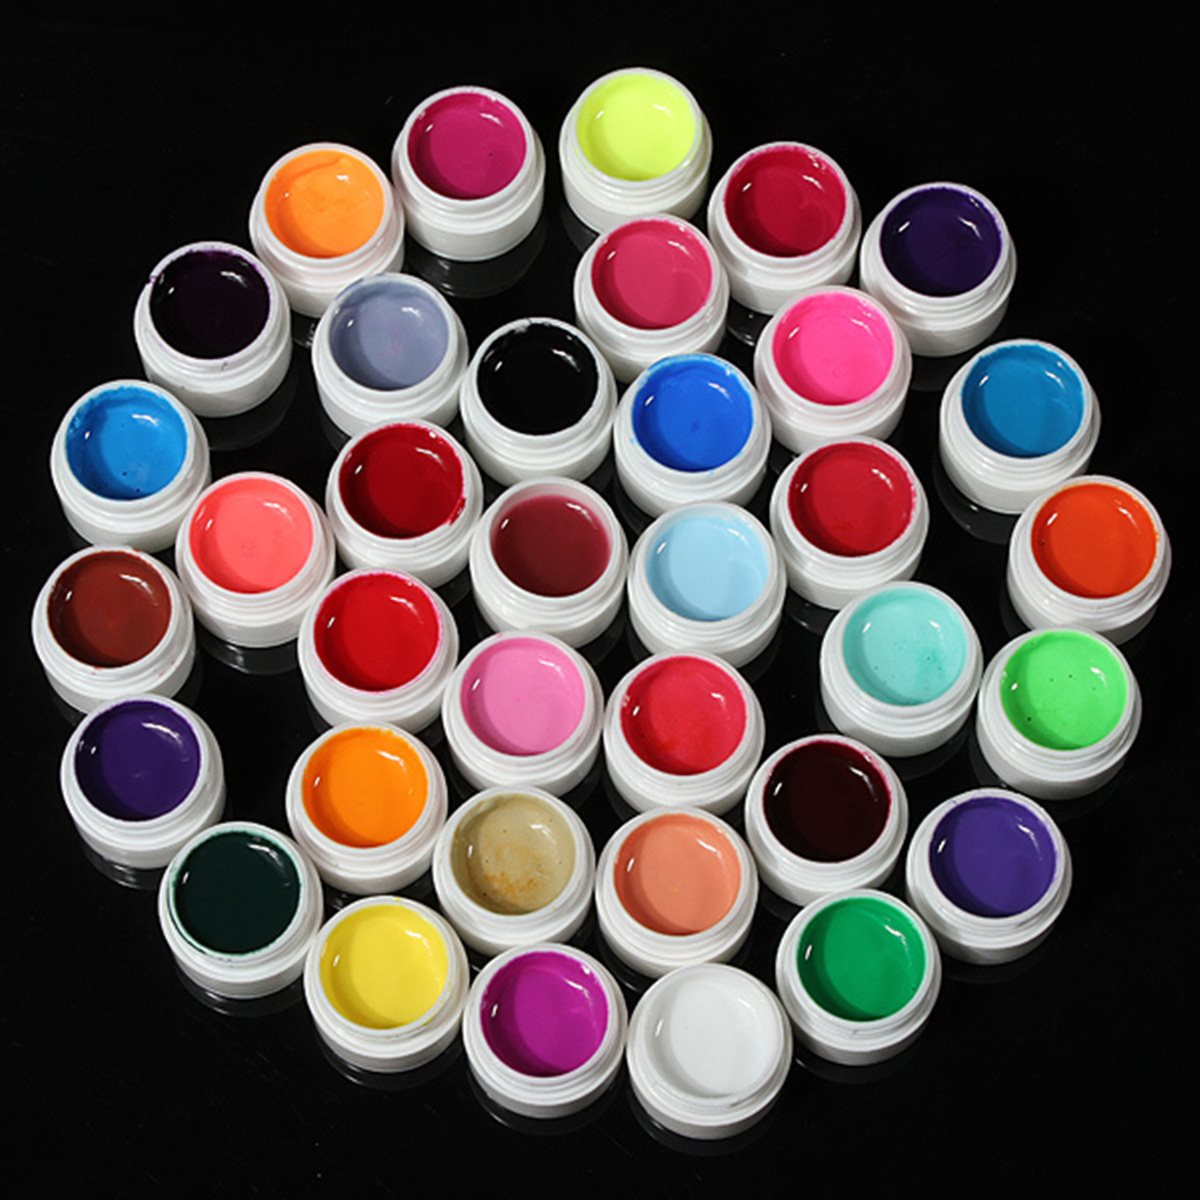 Pro Mix 36 Colors Shiny Cover Solid Colors UV Gel Kit Sets for Nail Art Tips Extension Manicure DIY Decorations Design Set Tools 12 colors 3mm waterdrop rhinestone nail art salon stickers tips diy decorations with wheel chic design 5gpn